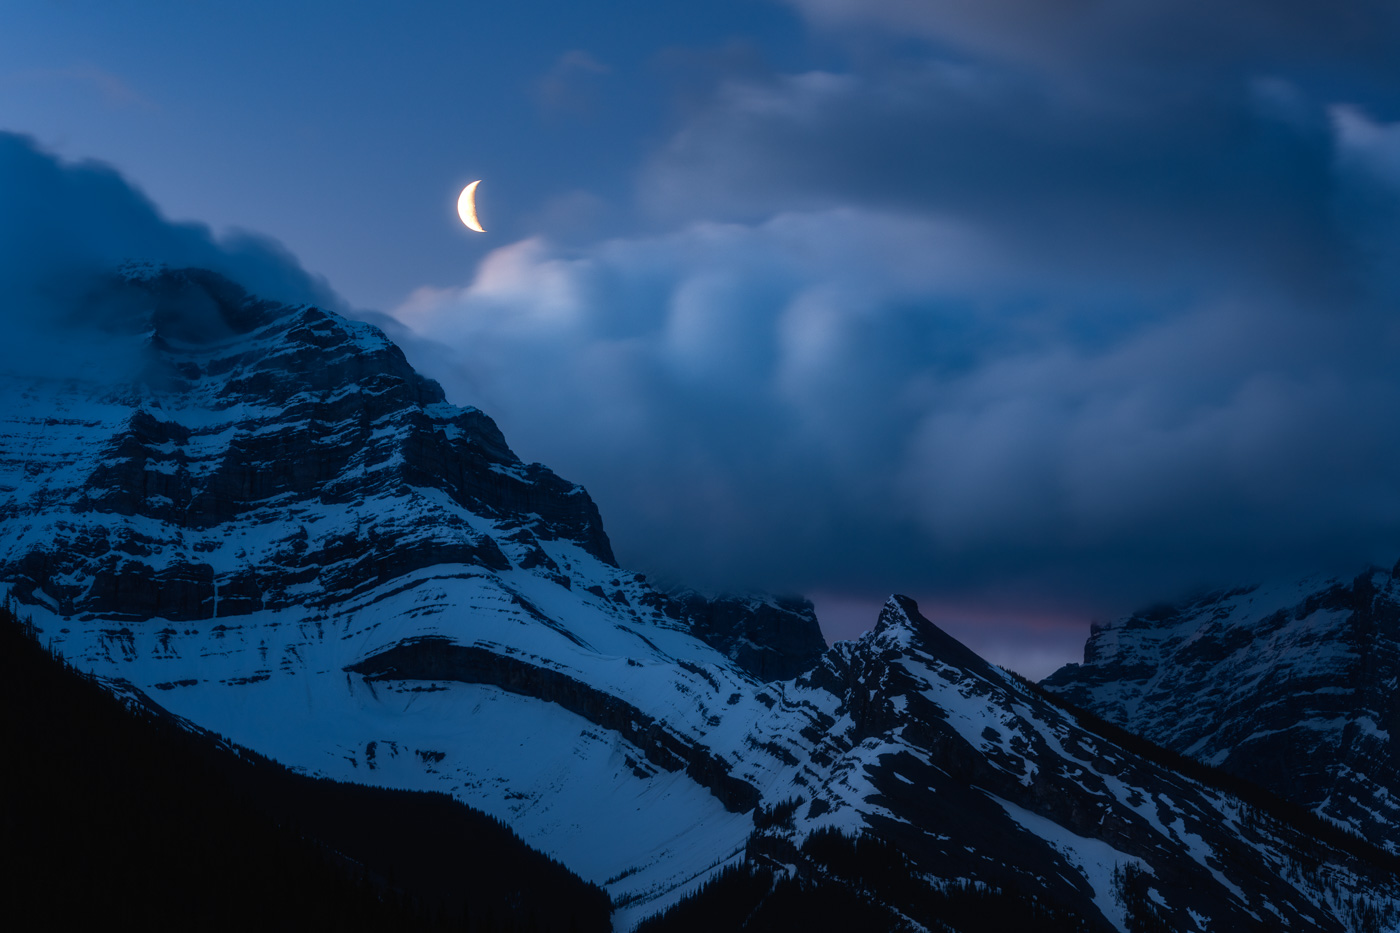 Moon over puffy clouds and Mount Lougheed at Blue Hour